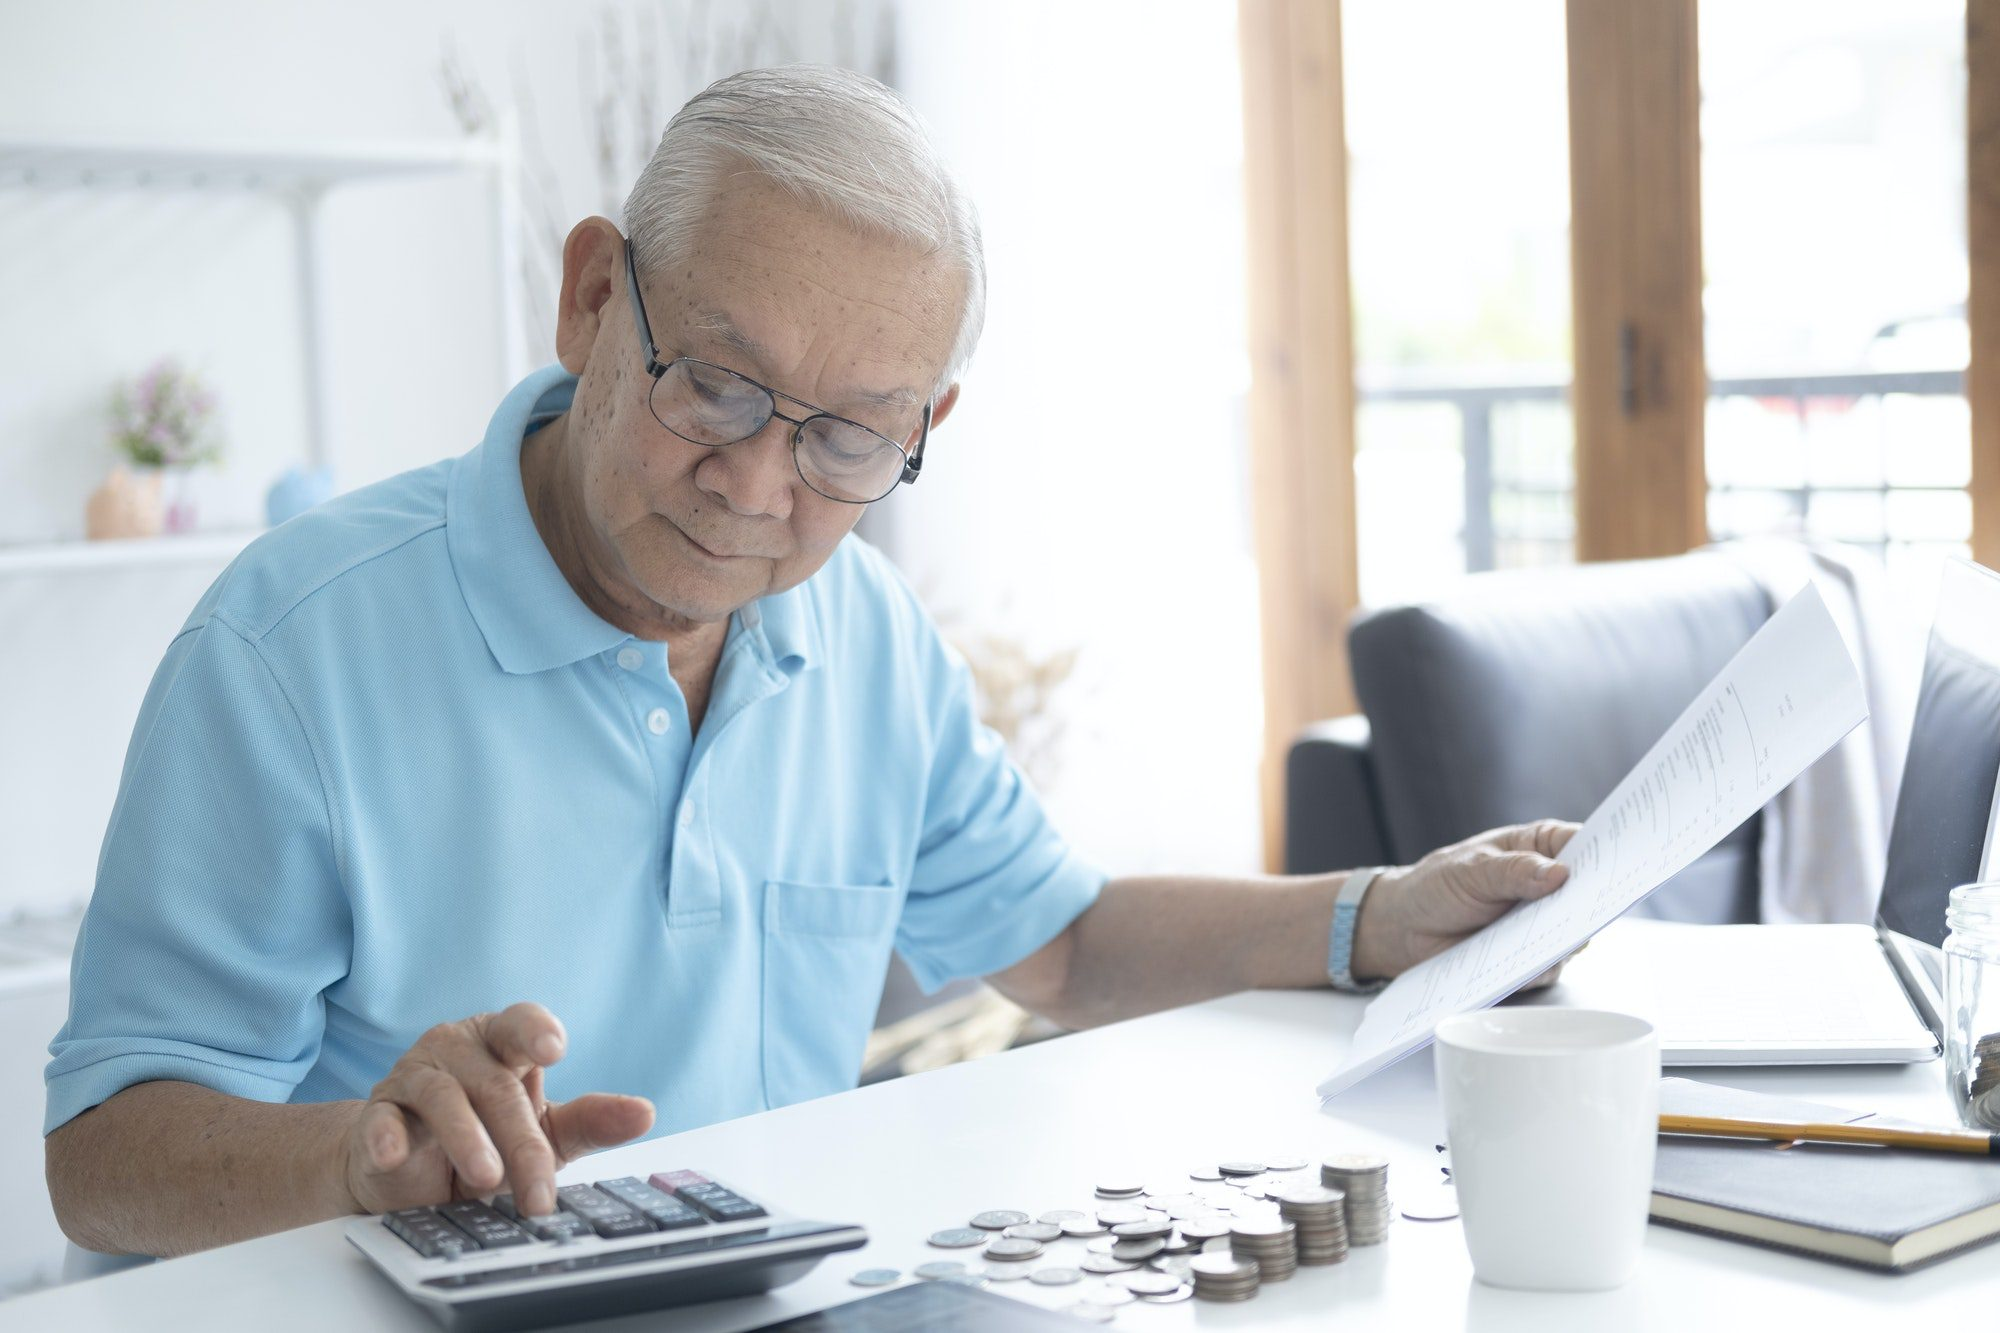 Senior man calculating how much to invest in Health Matching Account (HMA's).